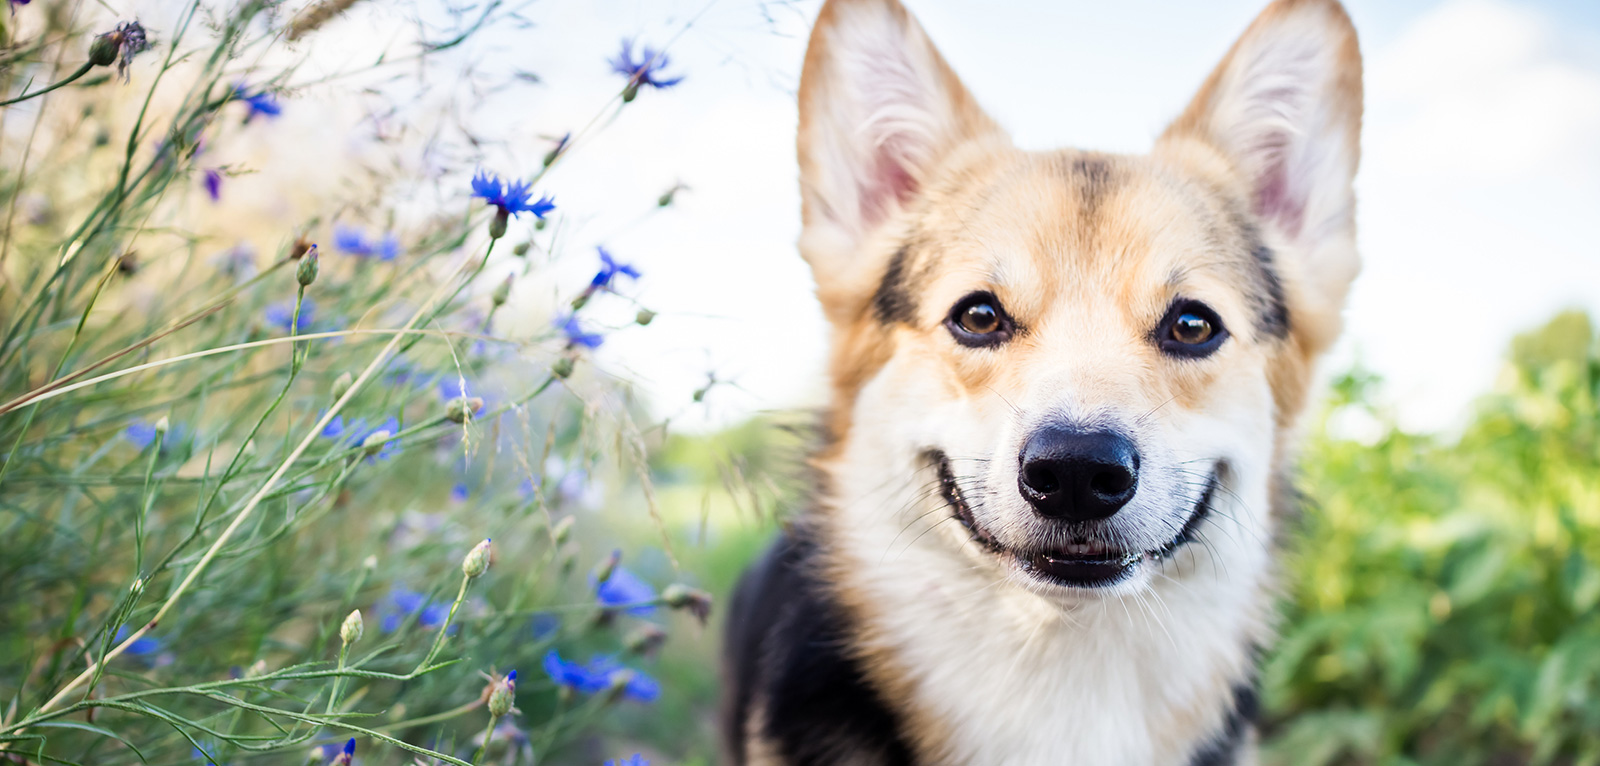 New Blog Post: 7 Feel-Good Animal Stories to Brighten Your Day